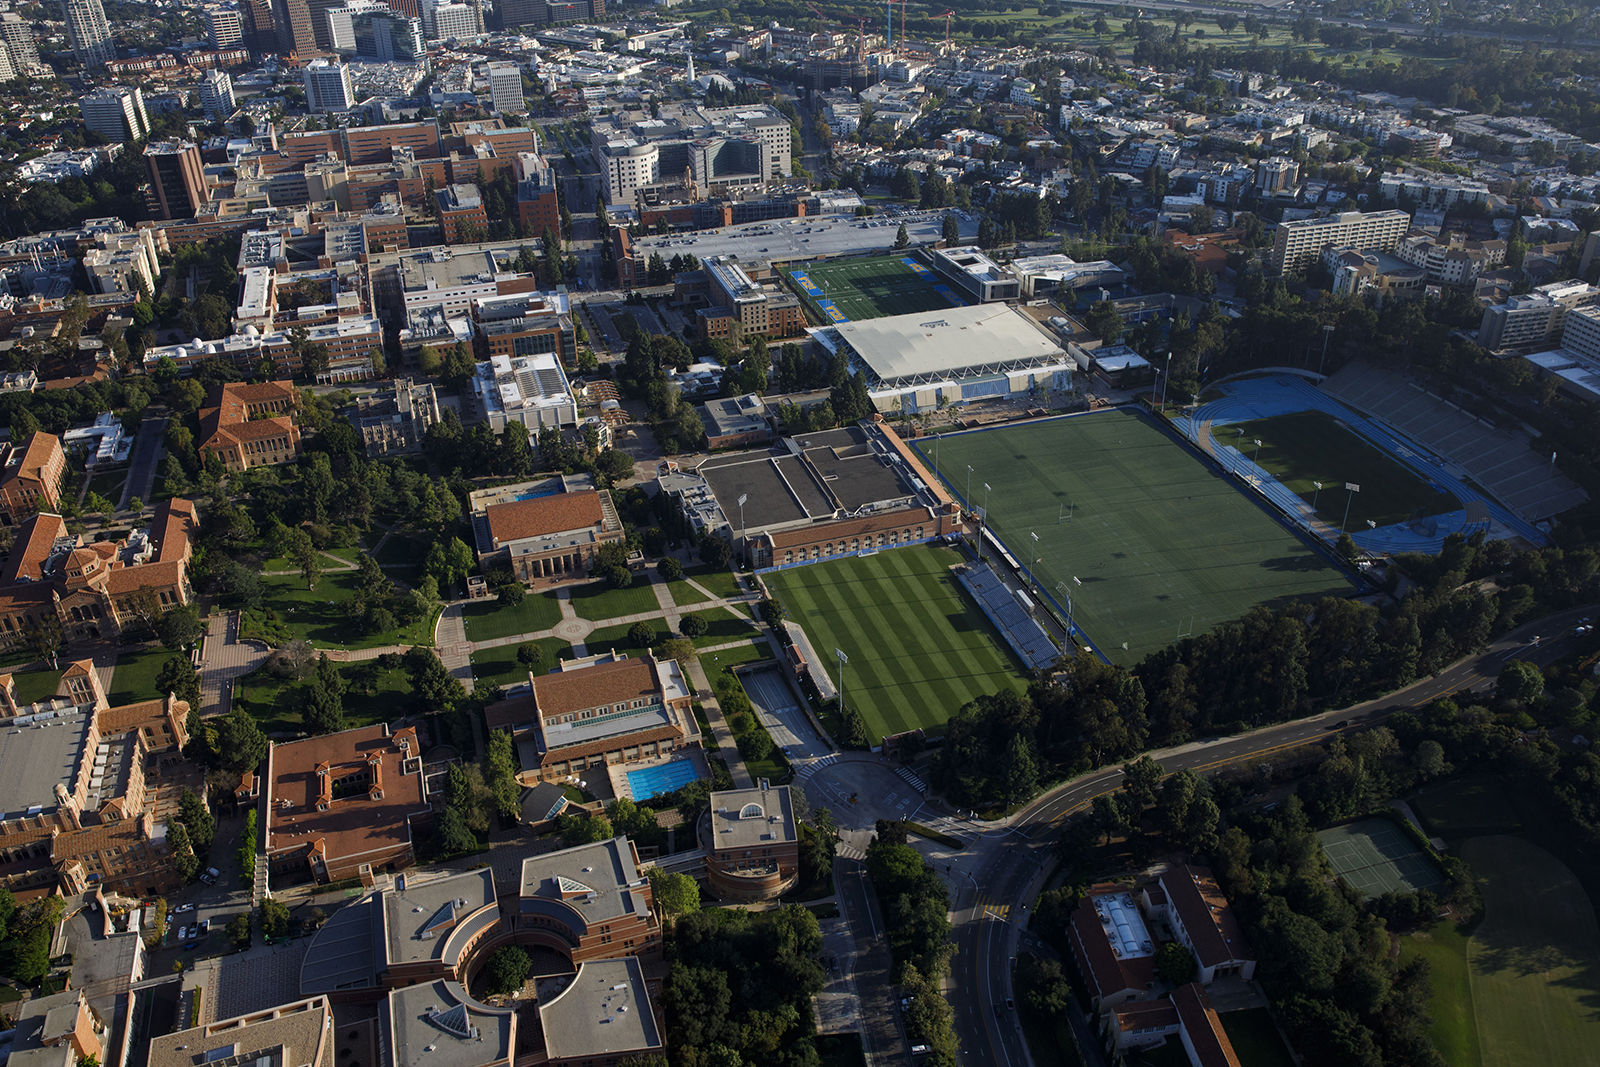 The University of California Los Angeles (UCLA) campus stands empty as seen from above on Friday, May 1.